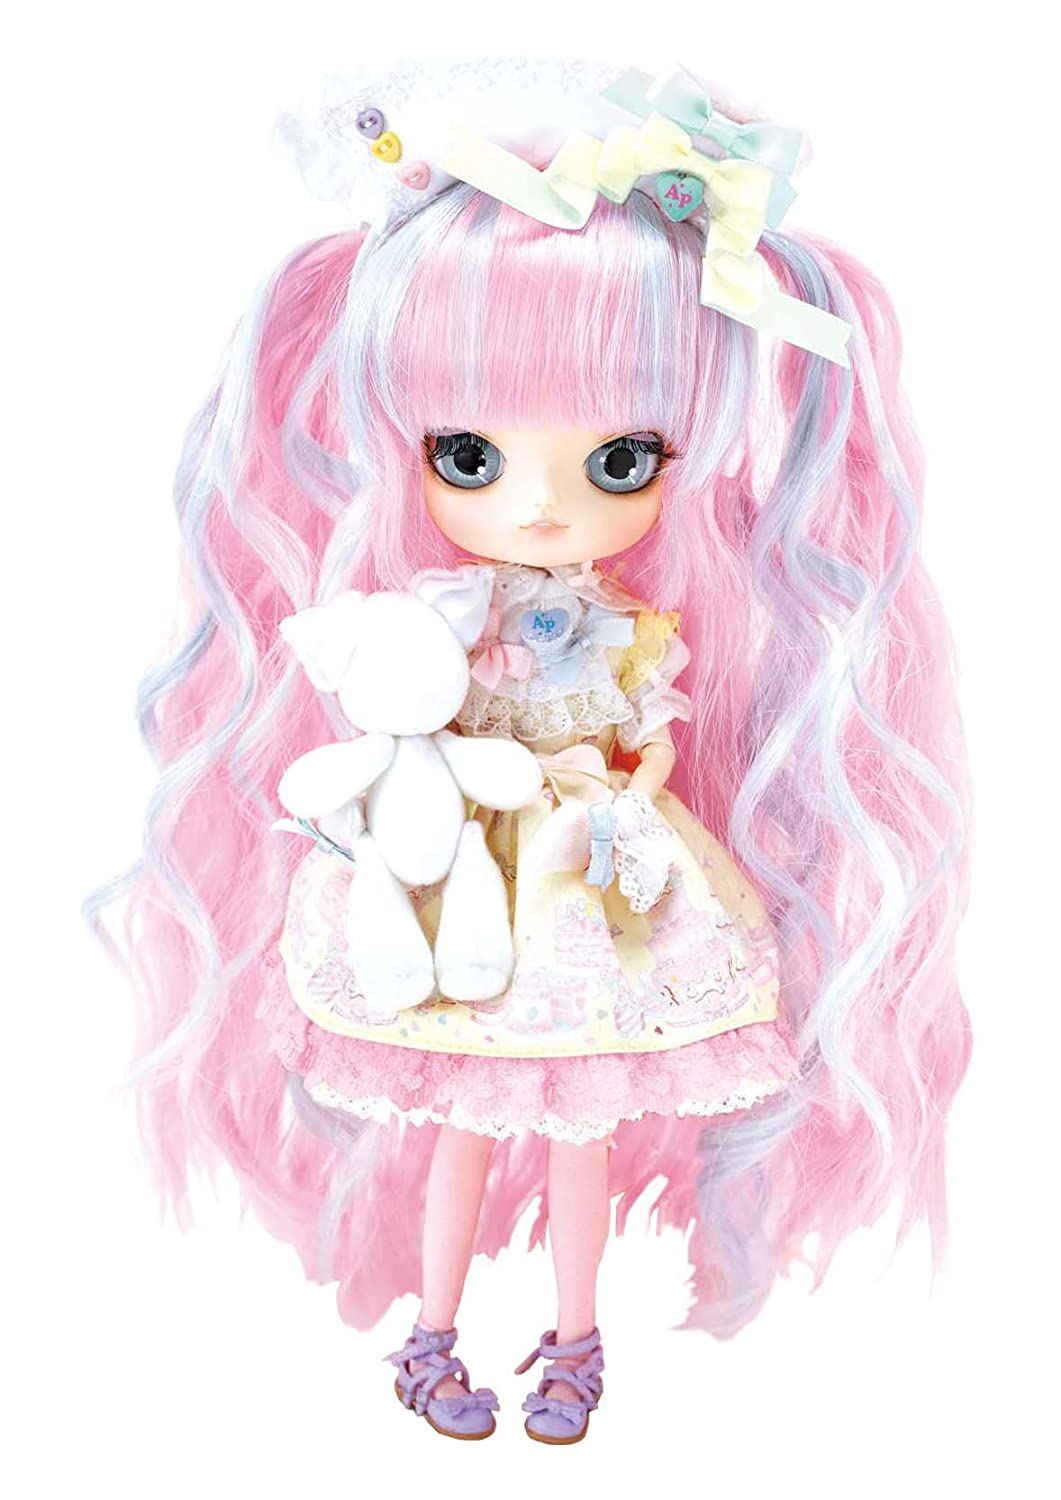 Pullip Dolls Amazon Pullip Dolls Dal Heart Macaron